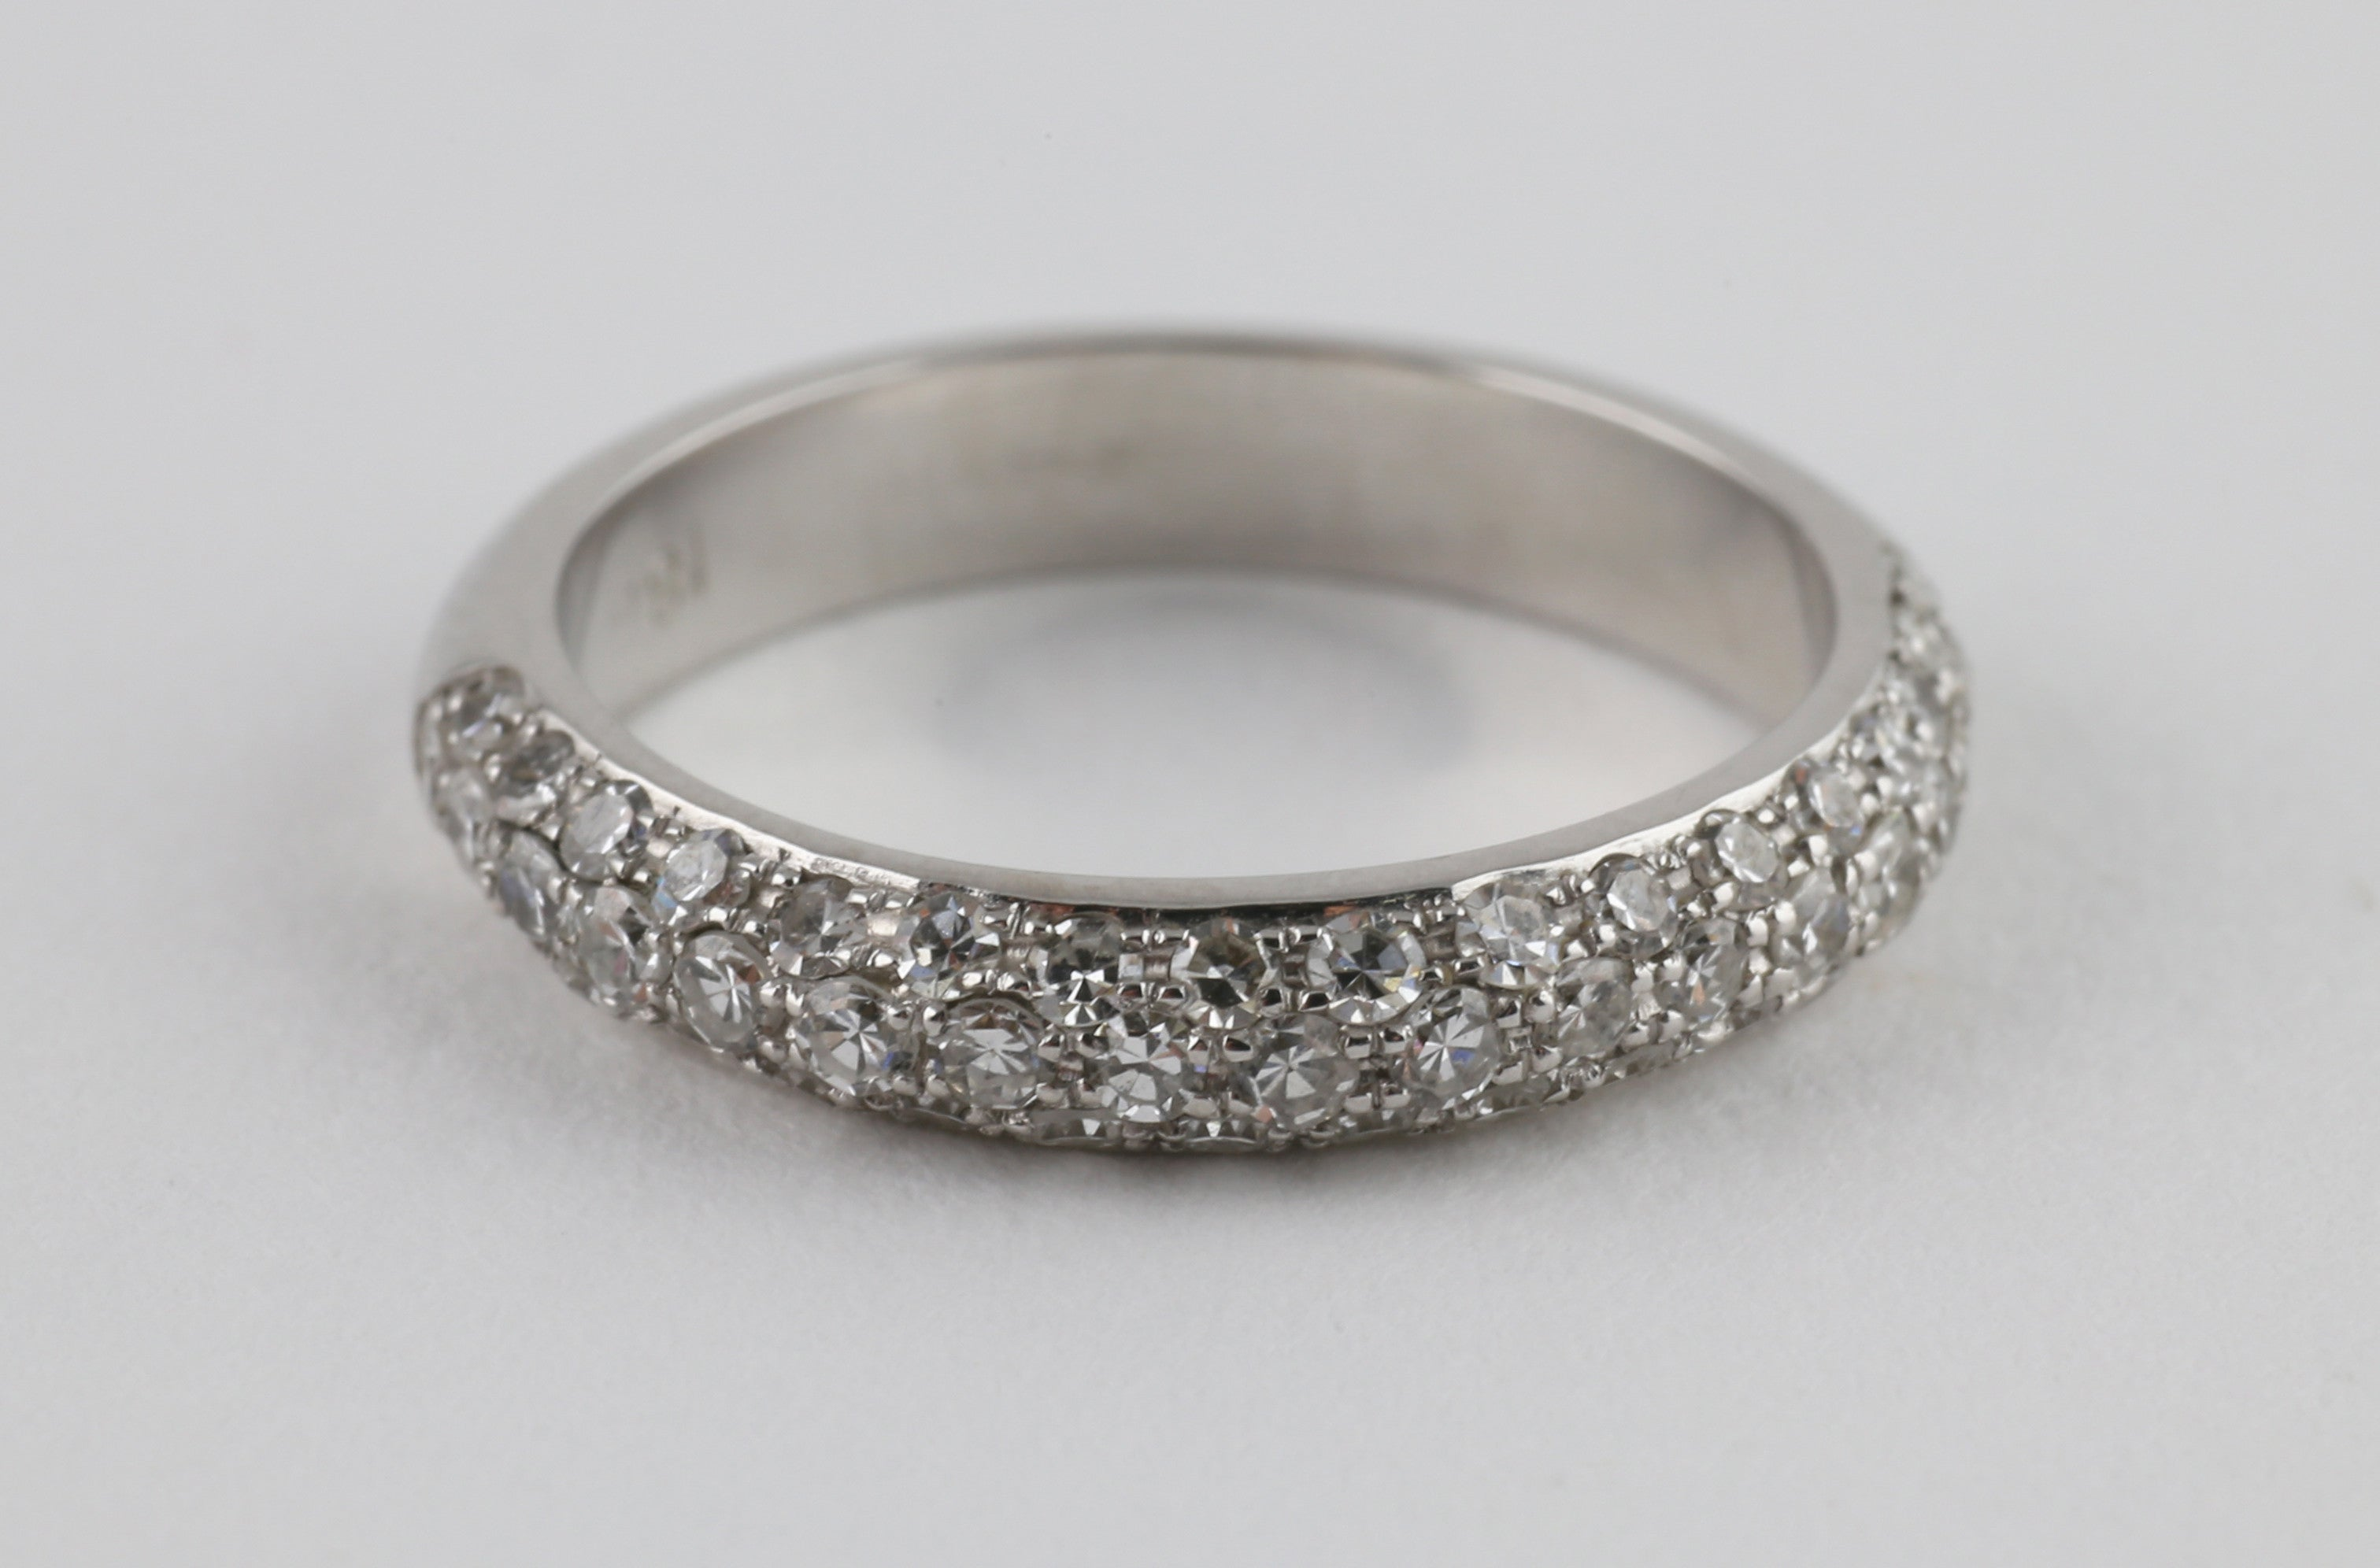 Classic French Pave Wedding Band